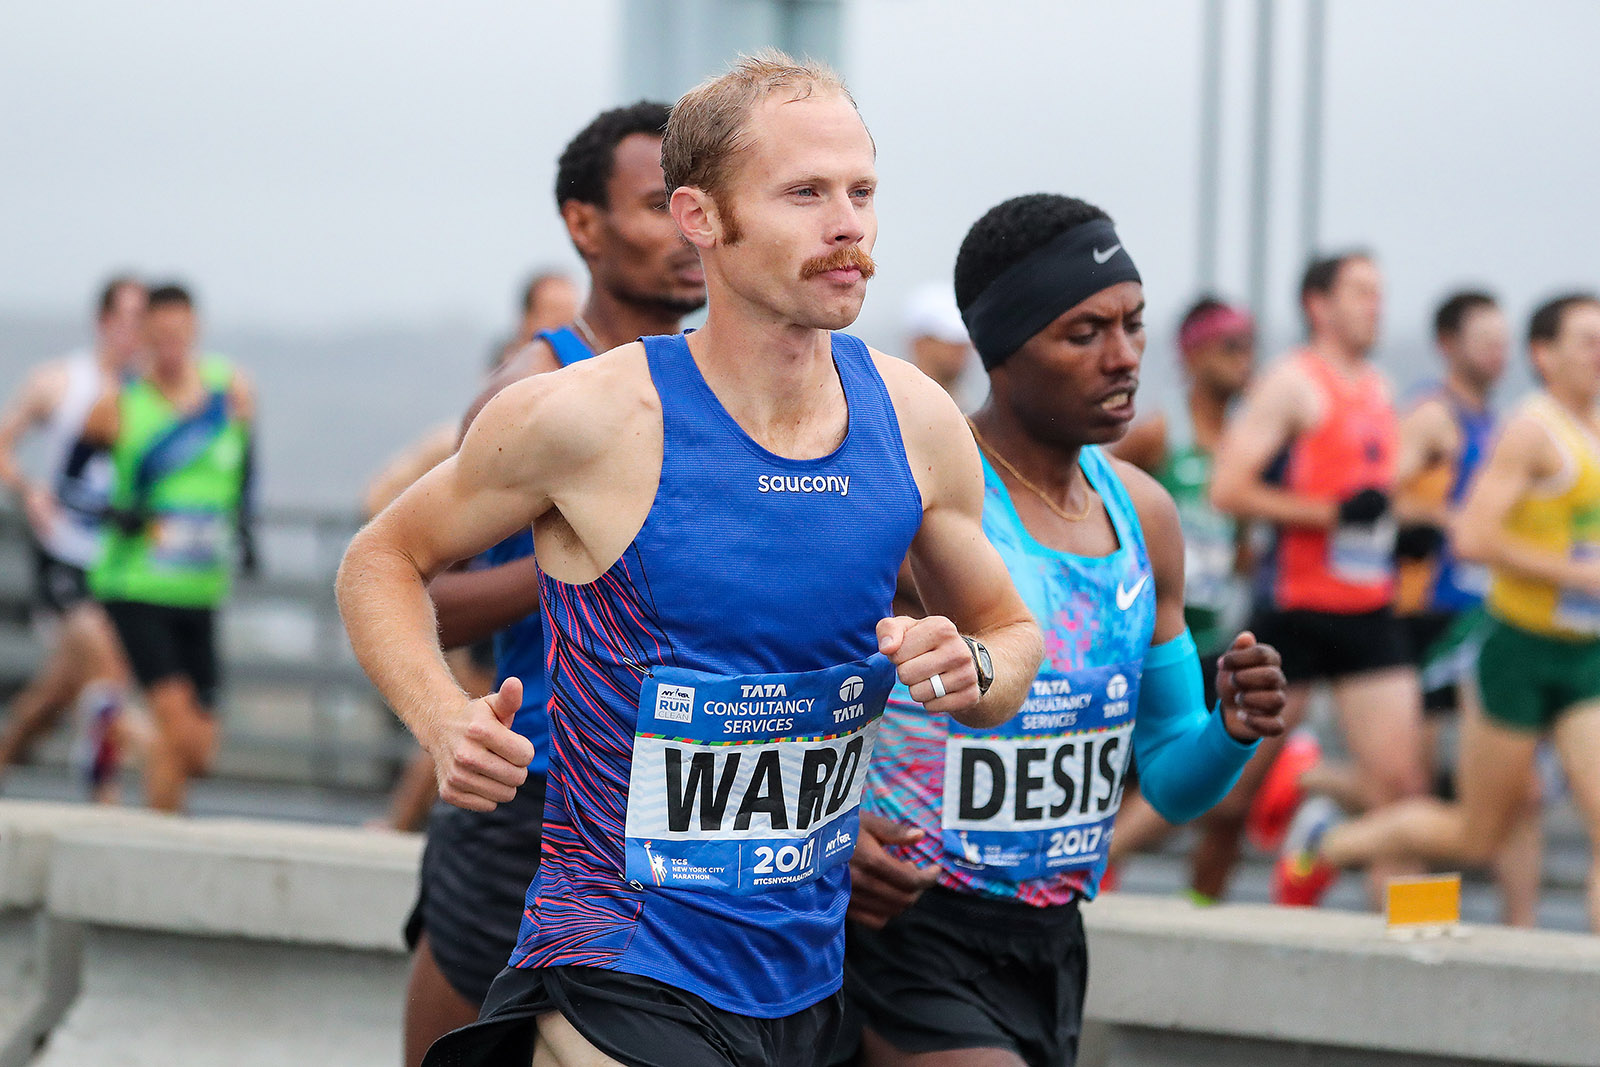 Jared Ward running the 2017 TCS New York City Marathon